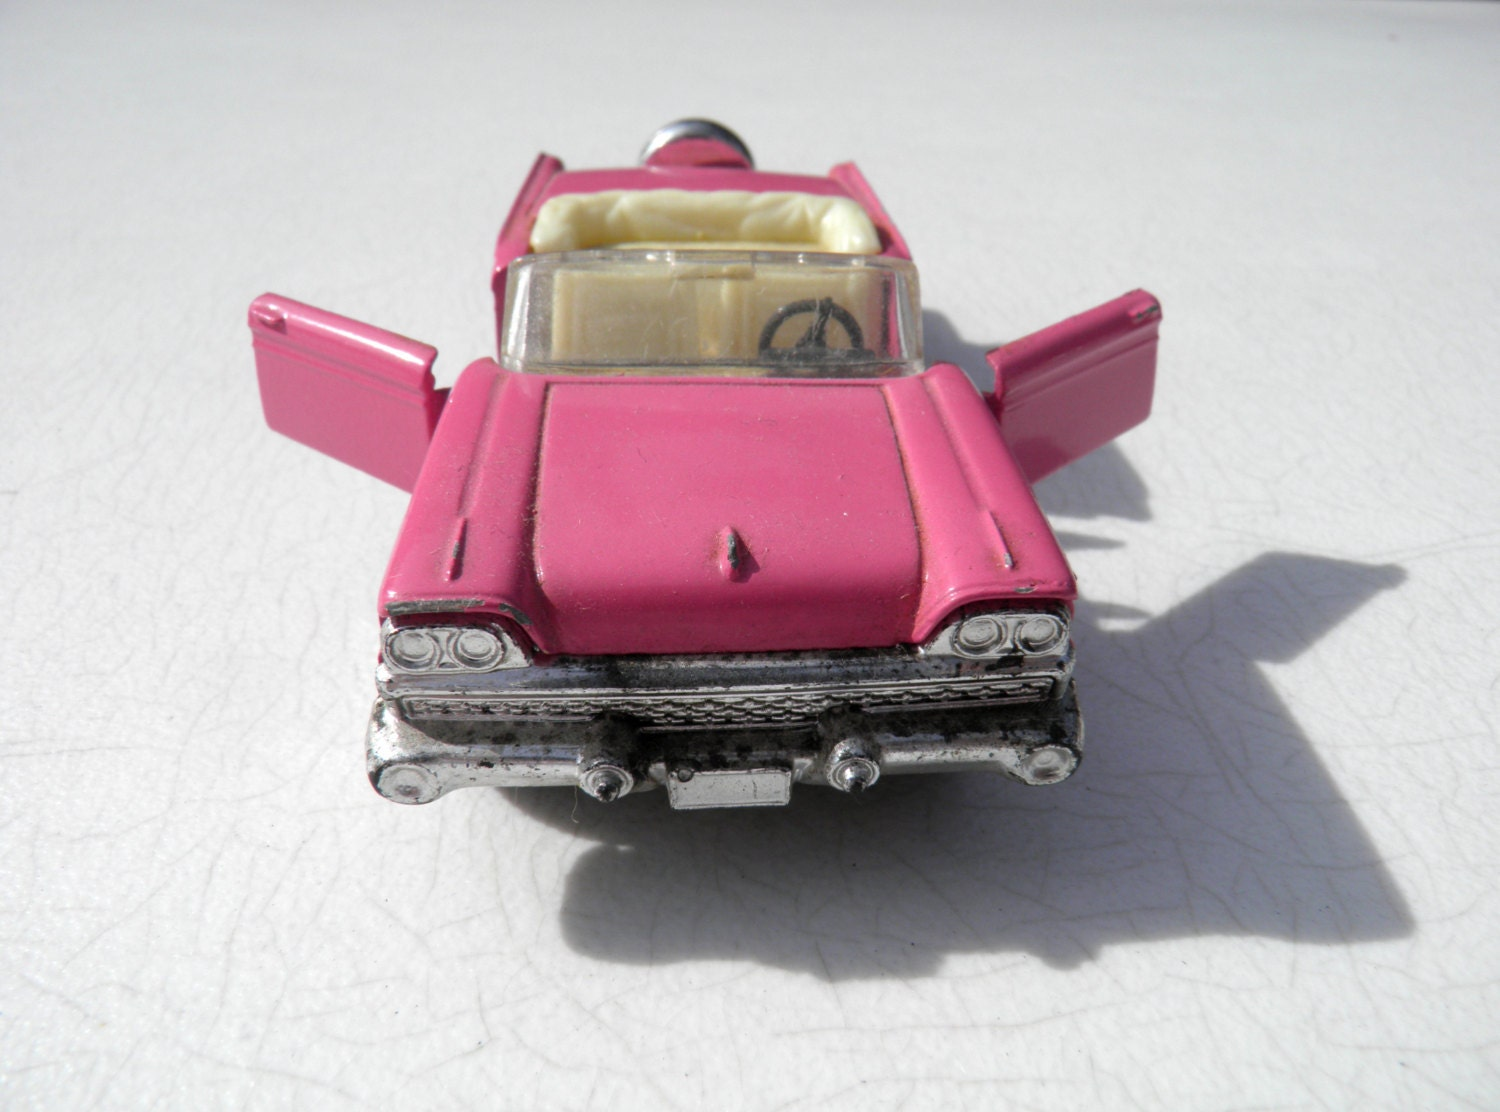 Metallic Pink Cars Pink Diecast Metal Toy Car